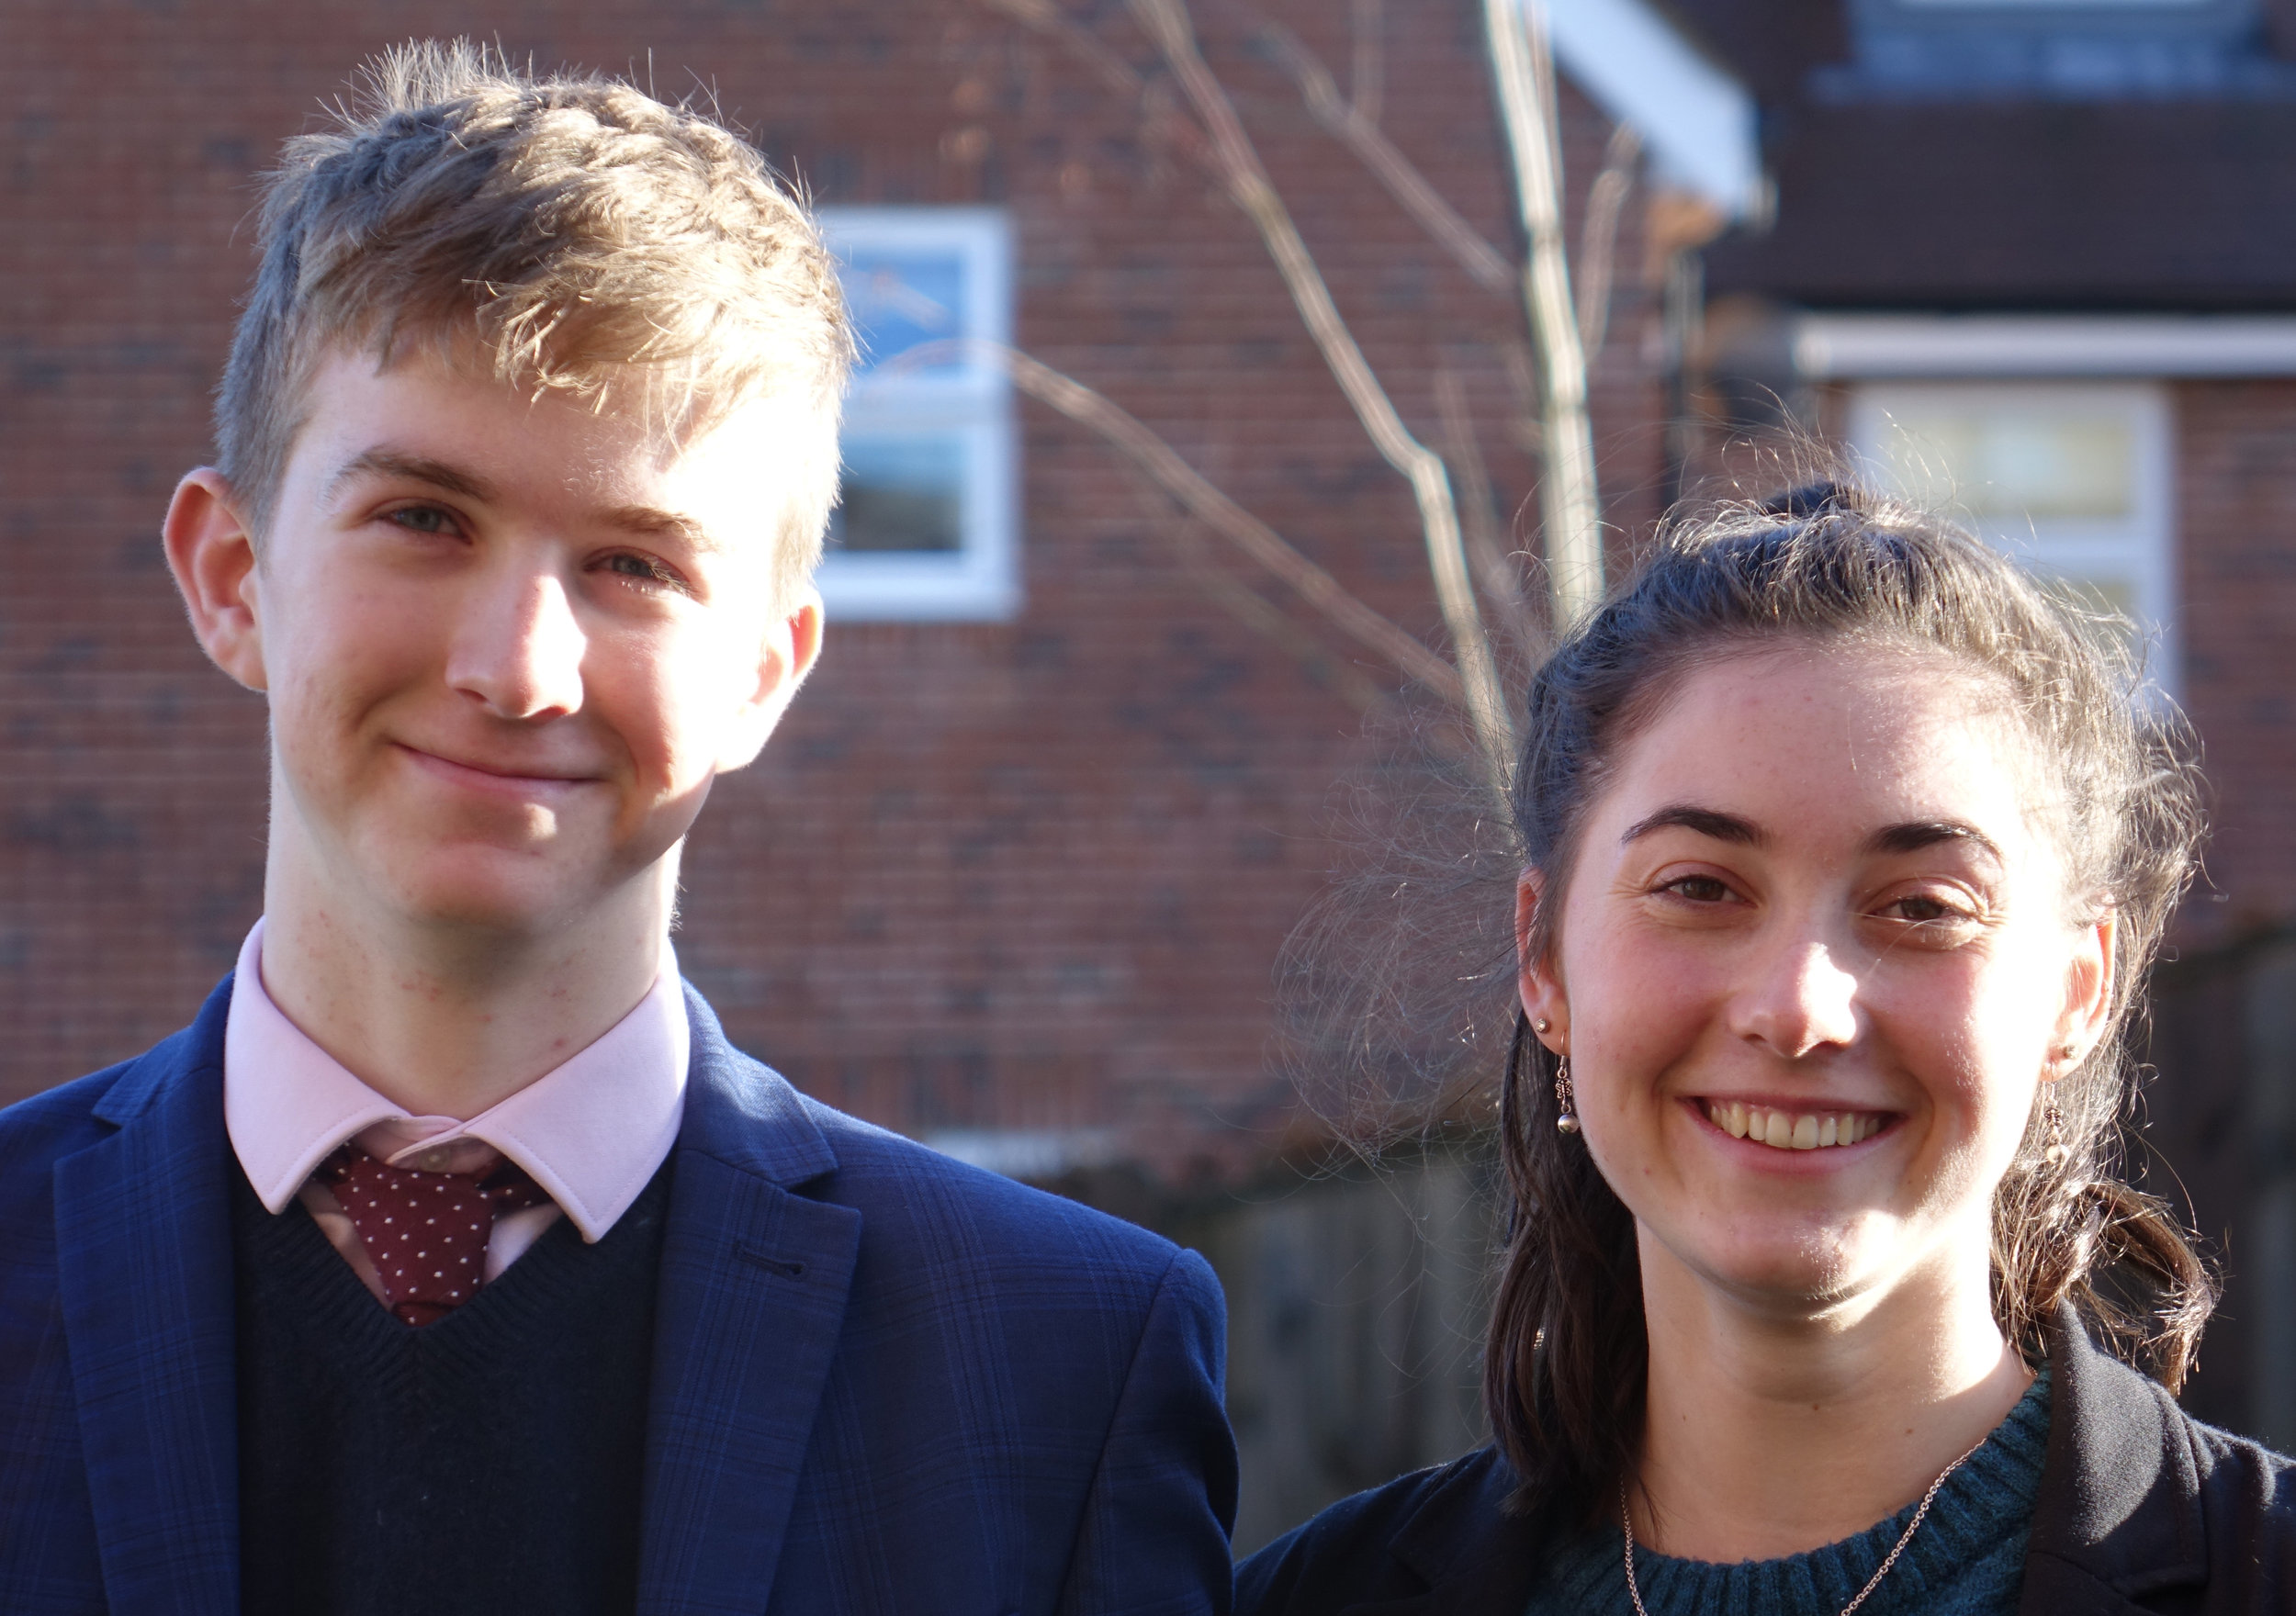 Meet the Sixth Formers: Our Blog